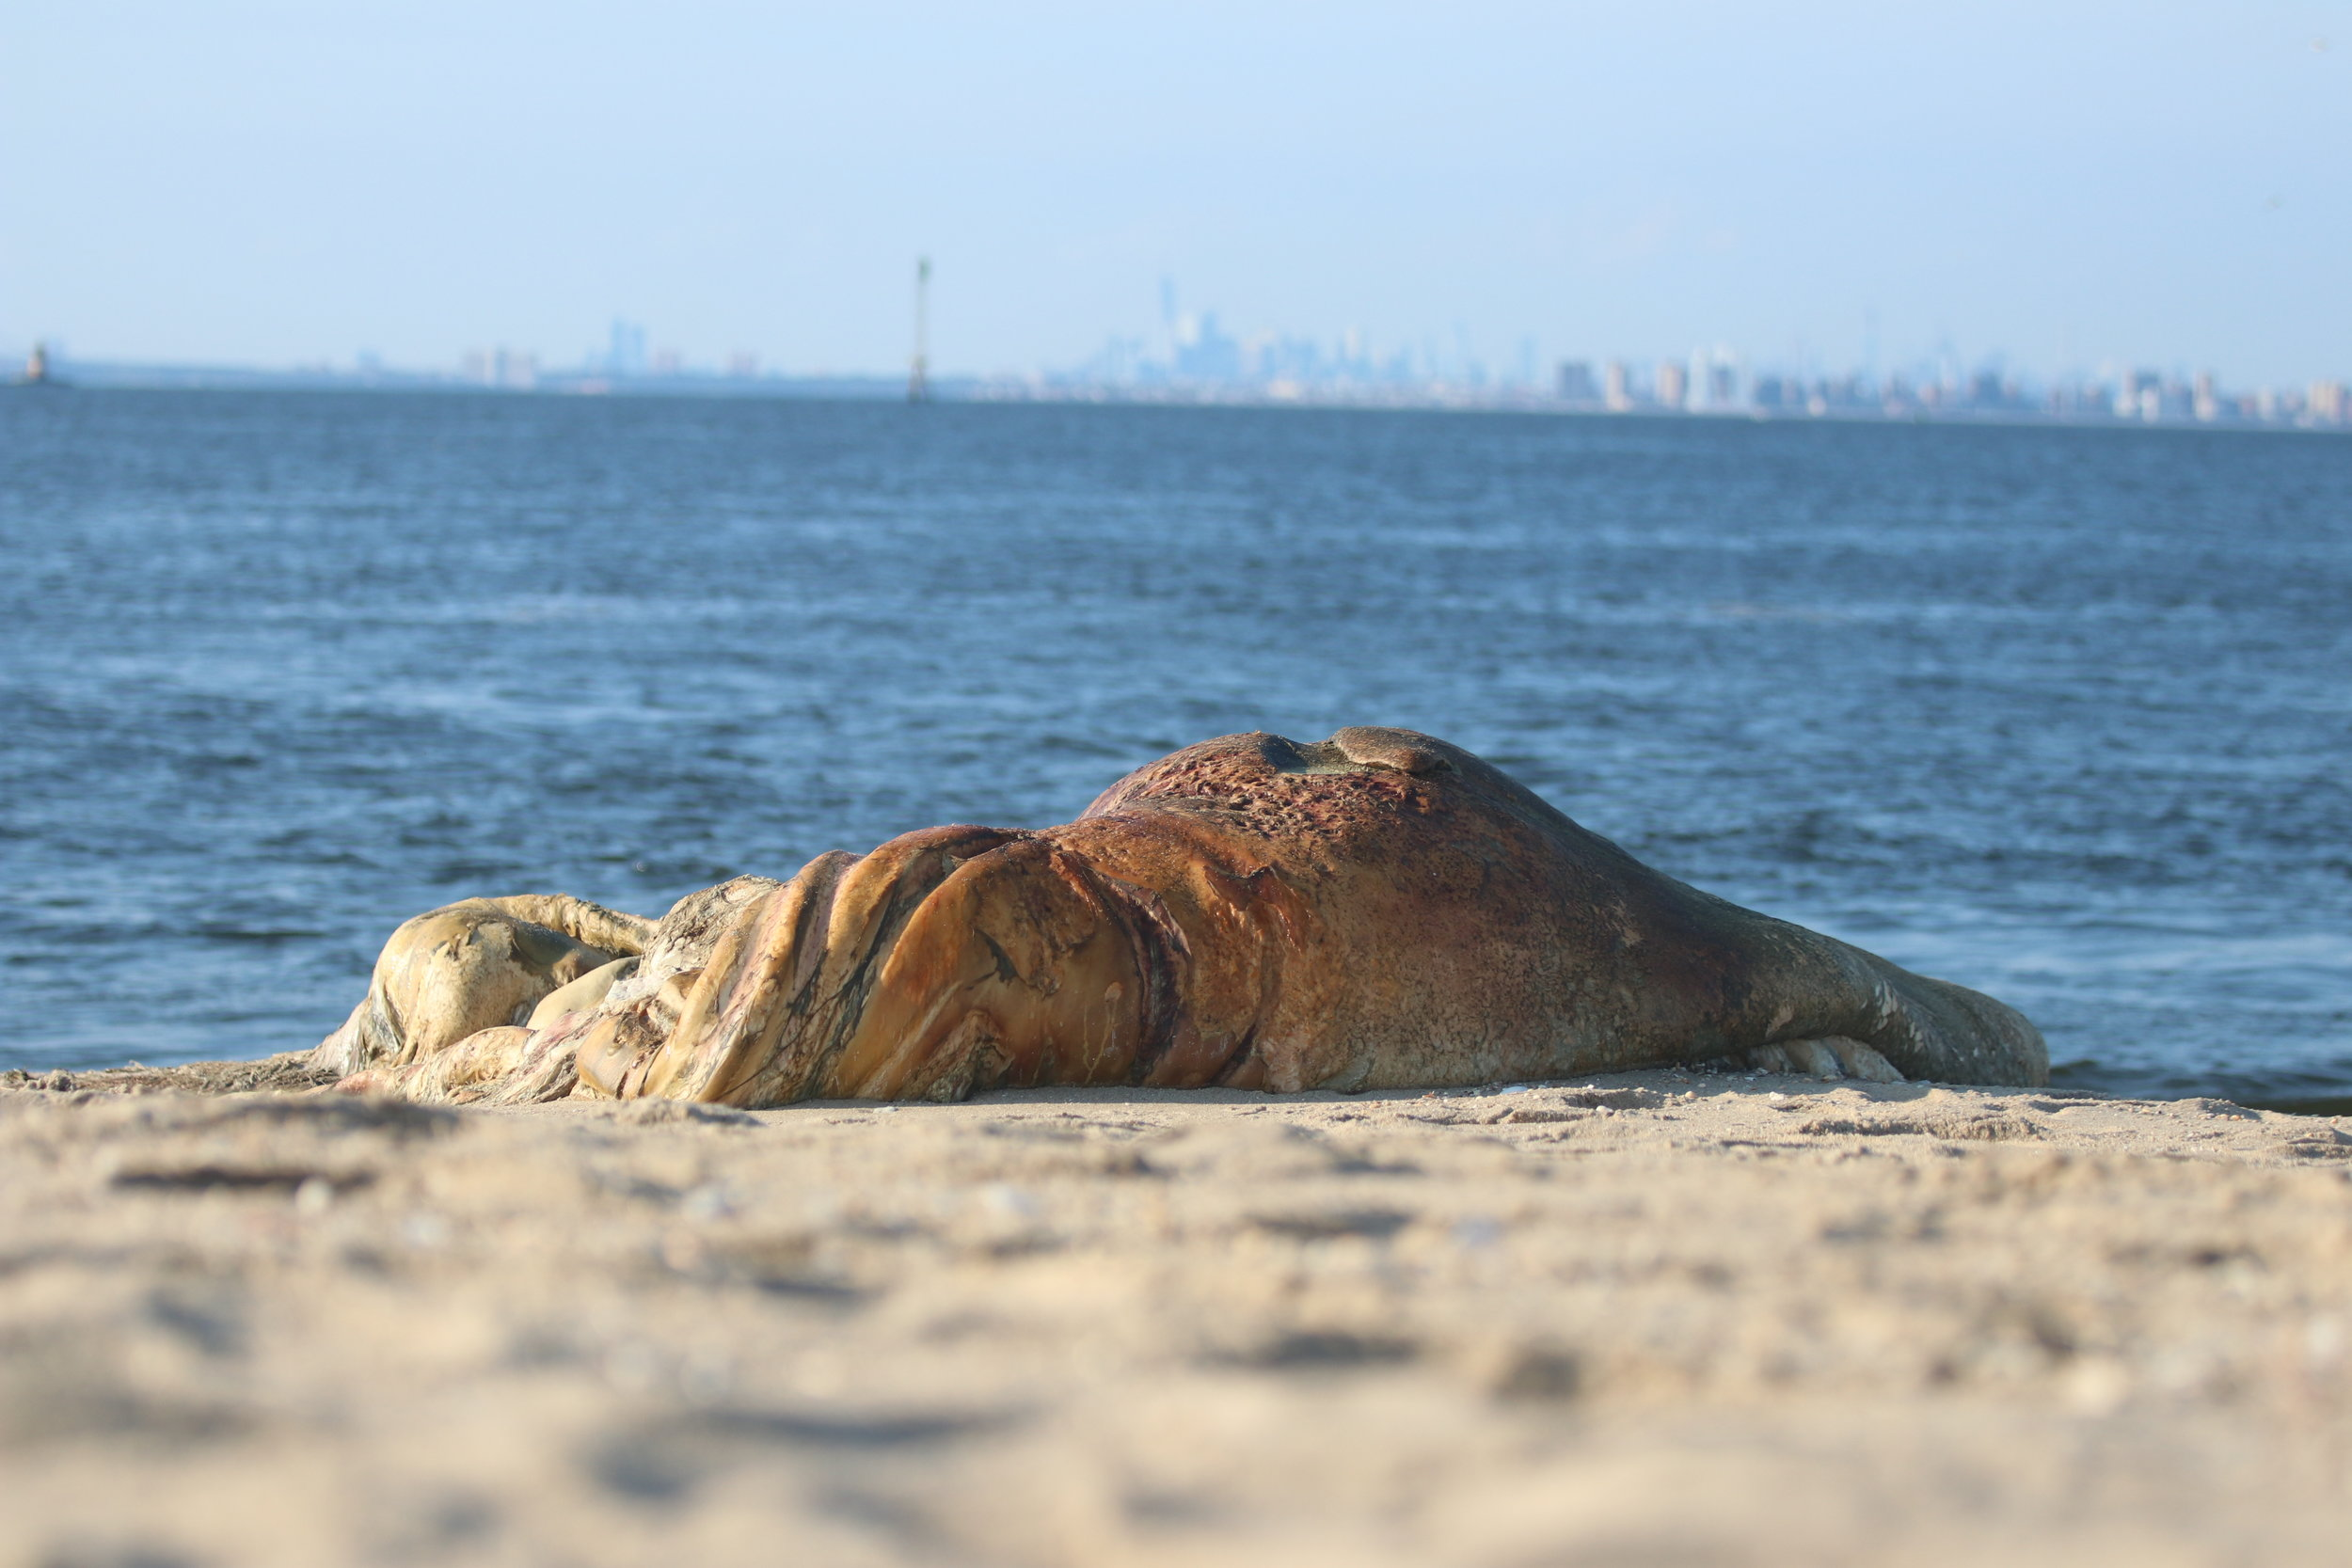 The remans of a juvenile humpback whale found on a beach at the entrance to New York Harbor in August 2019. The young whale likely collided with a cargo ship near the entrance to the harbor.